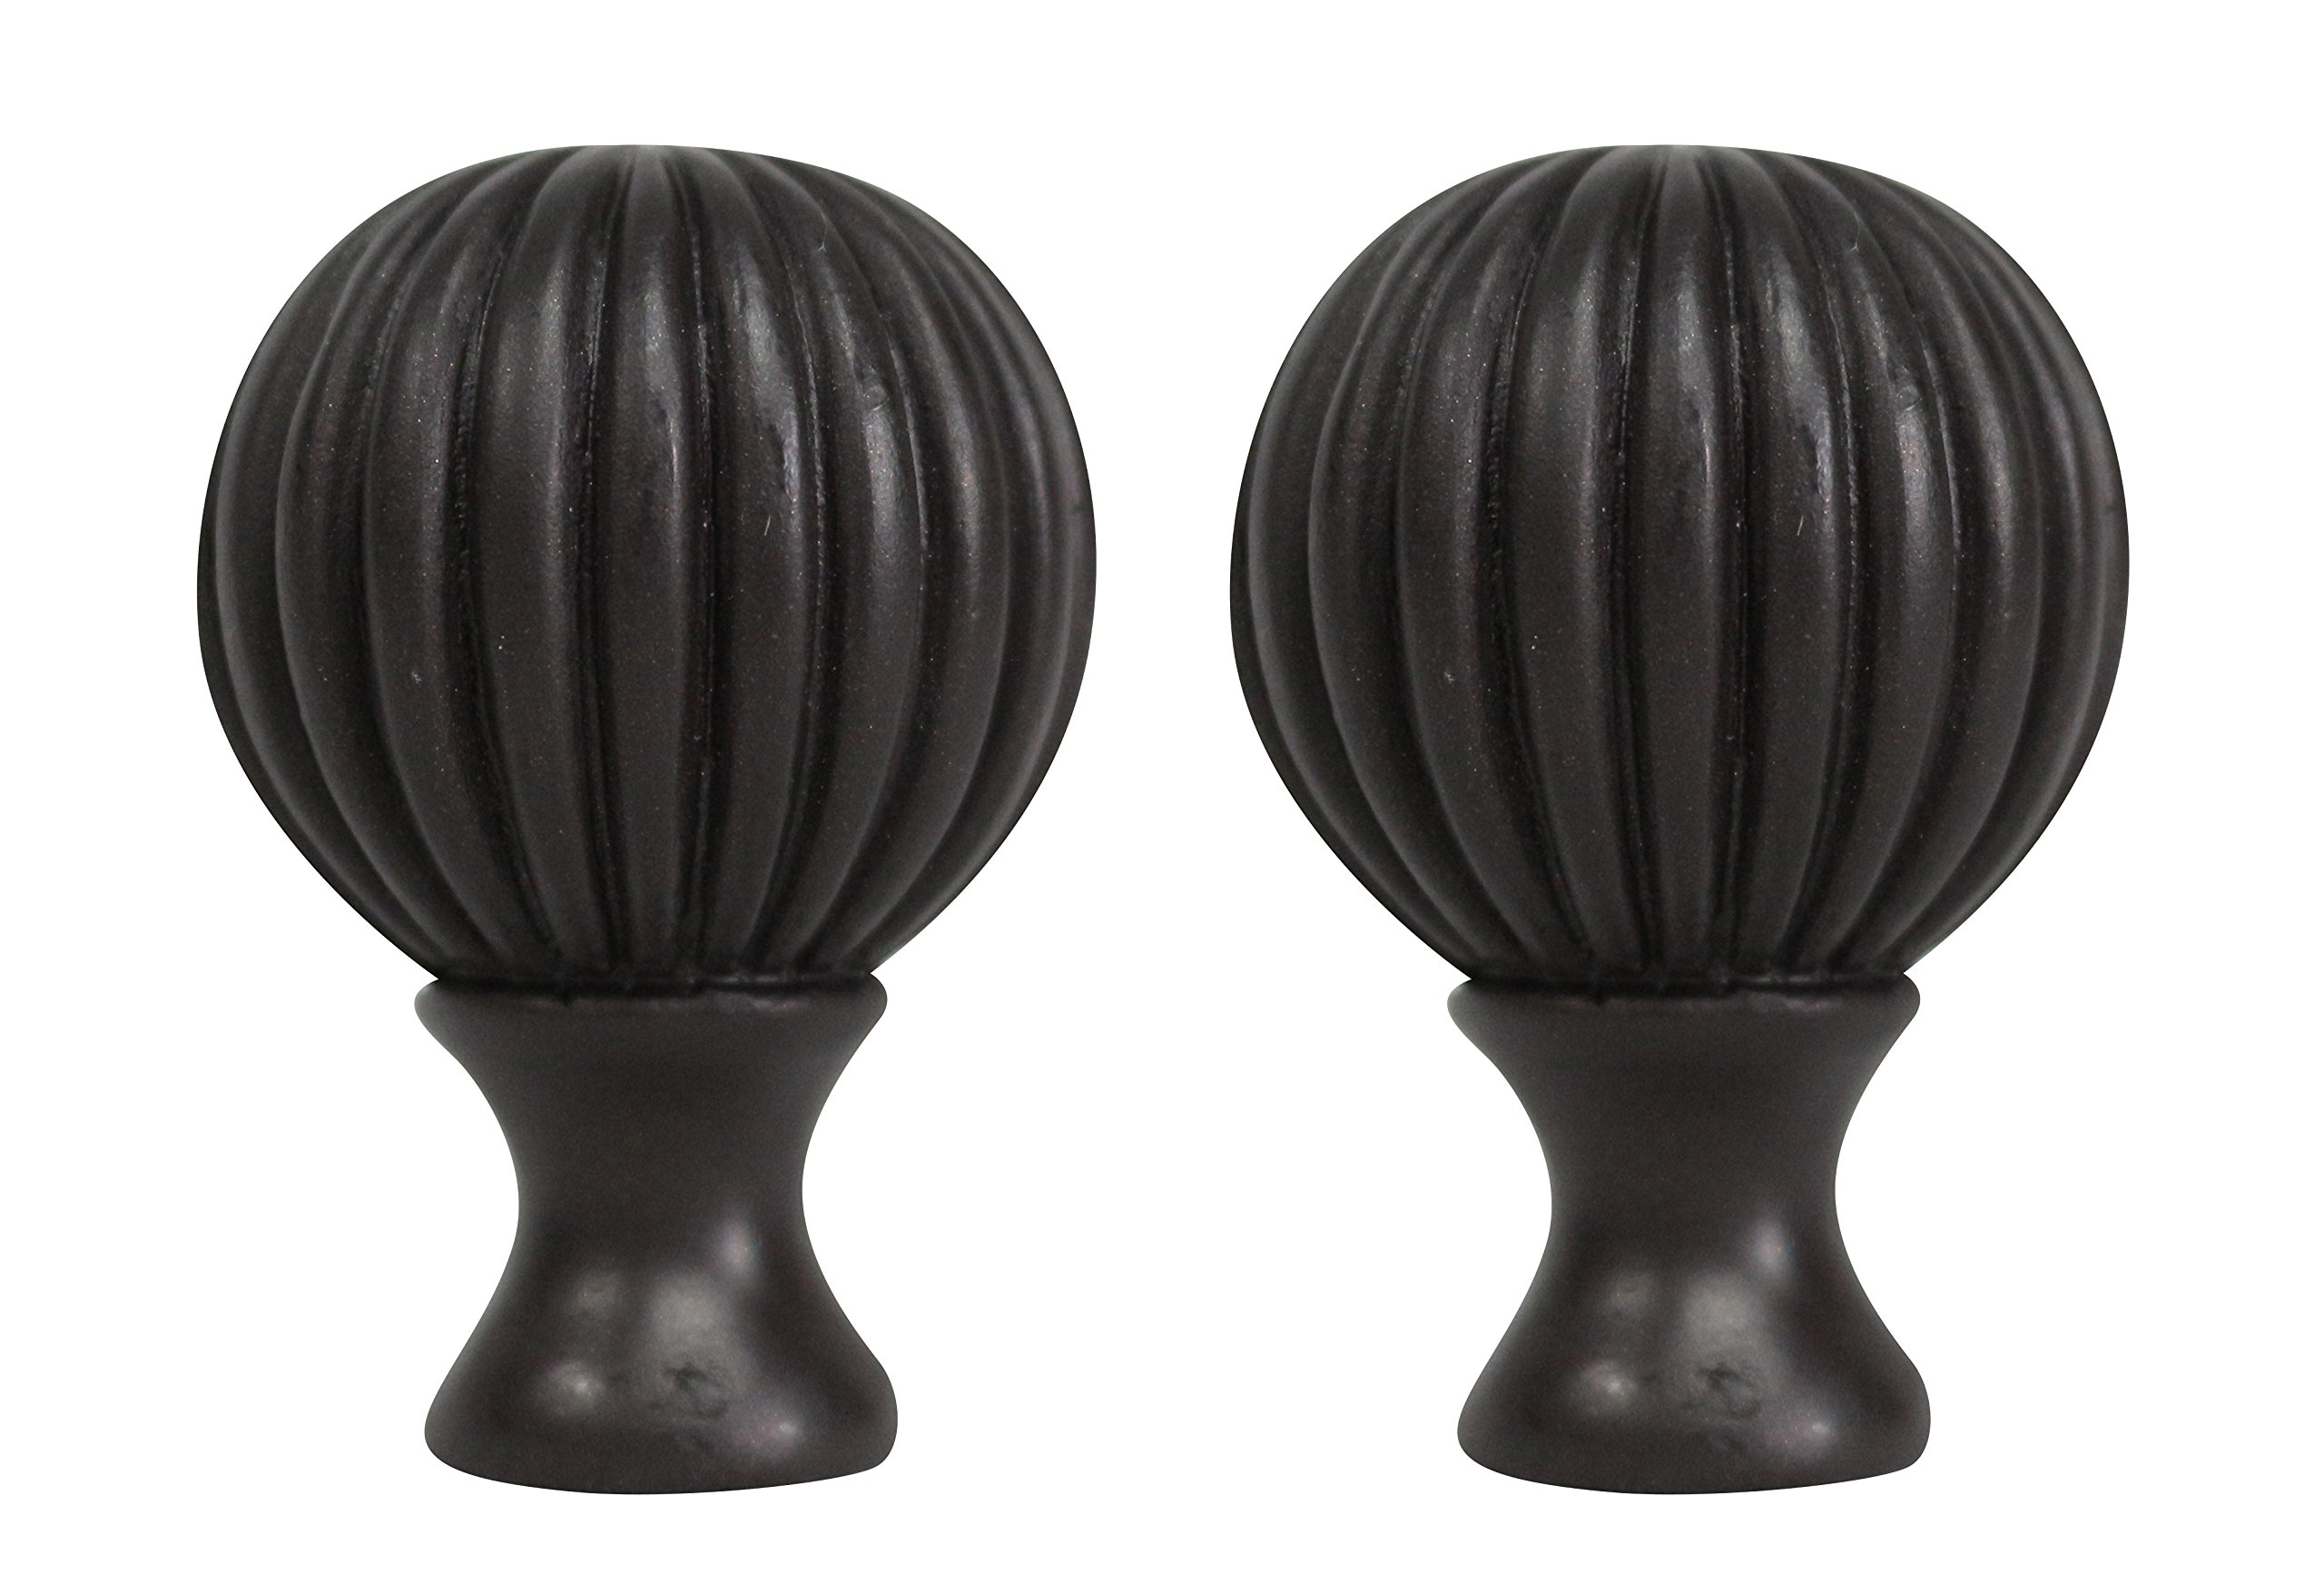 Urbanest Set of 2 Fluted Ball Lamp Finials, 2 1/8-inch Tall, Oil-rubbed Bronze